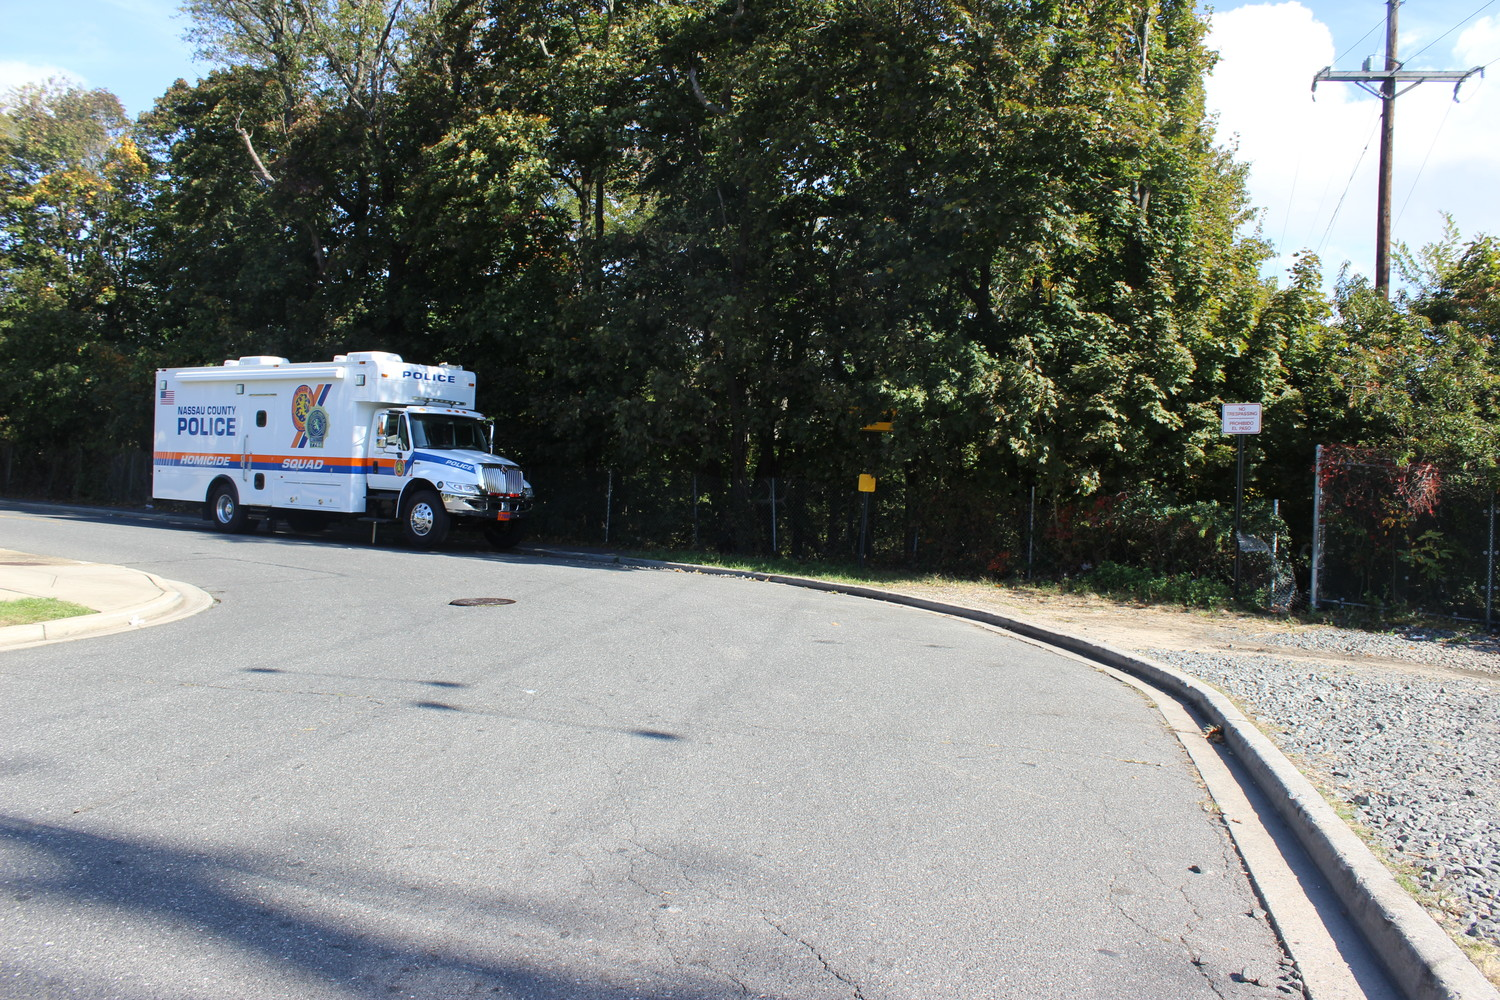 Human remains found during search of Freeport wooded area